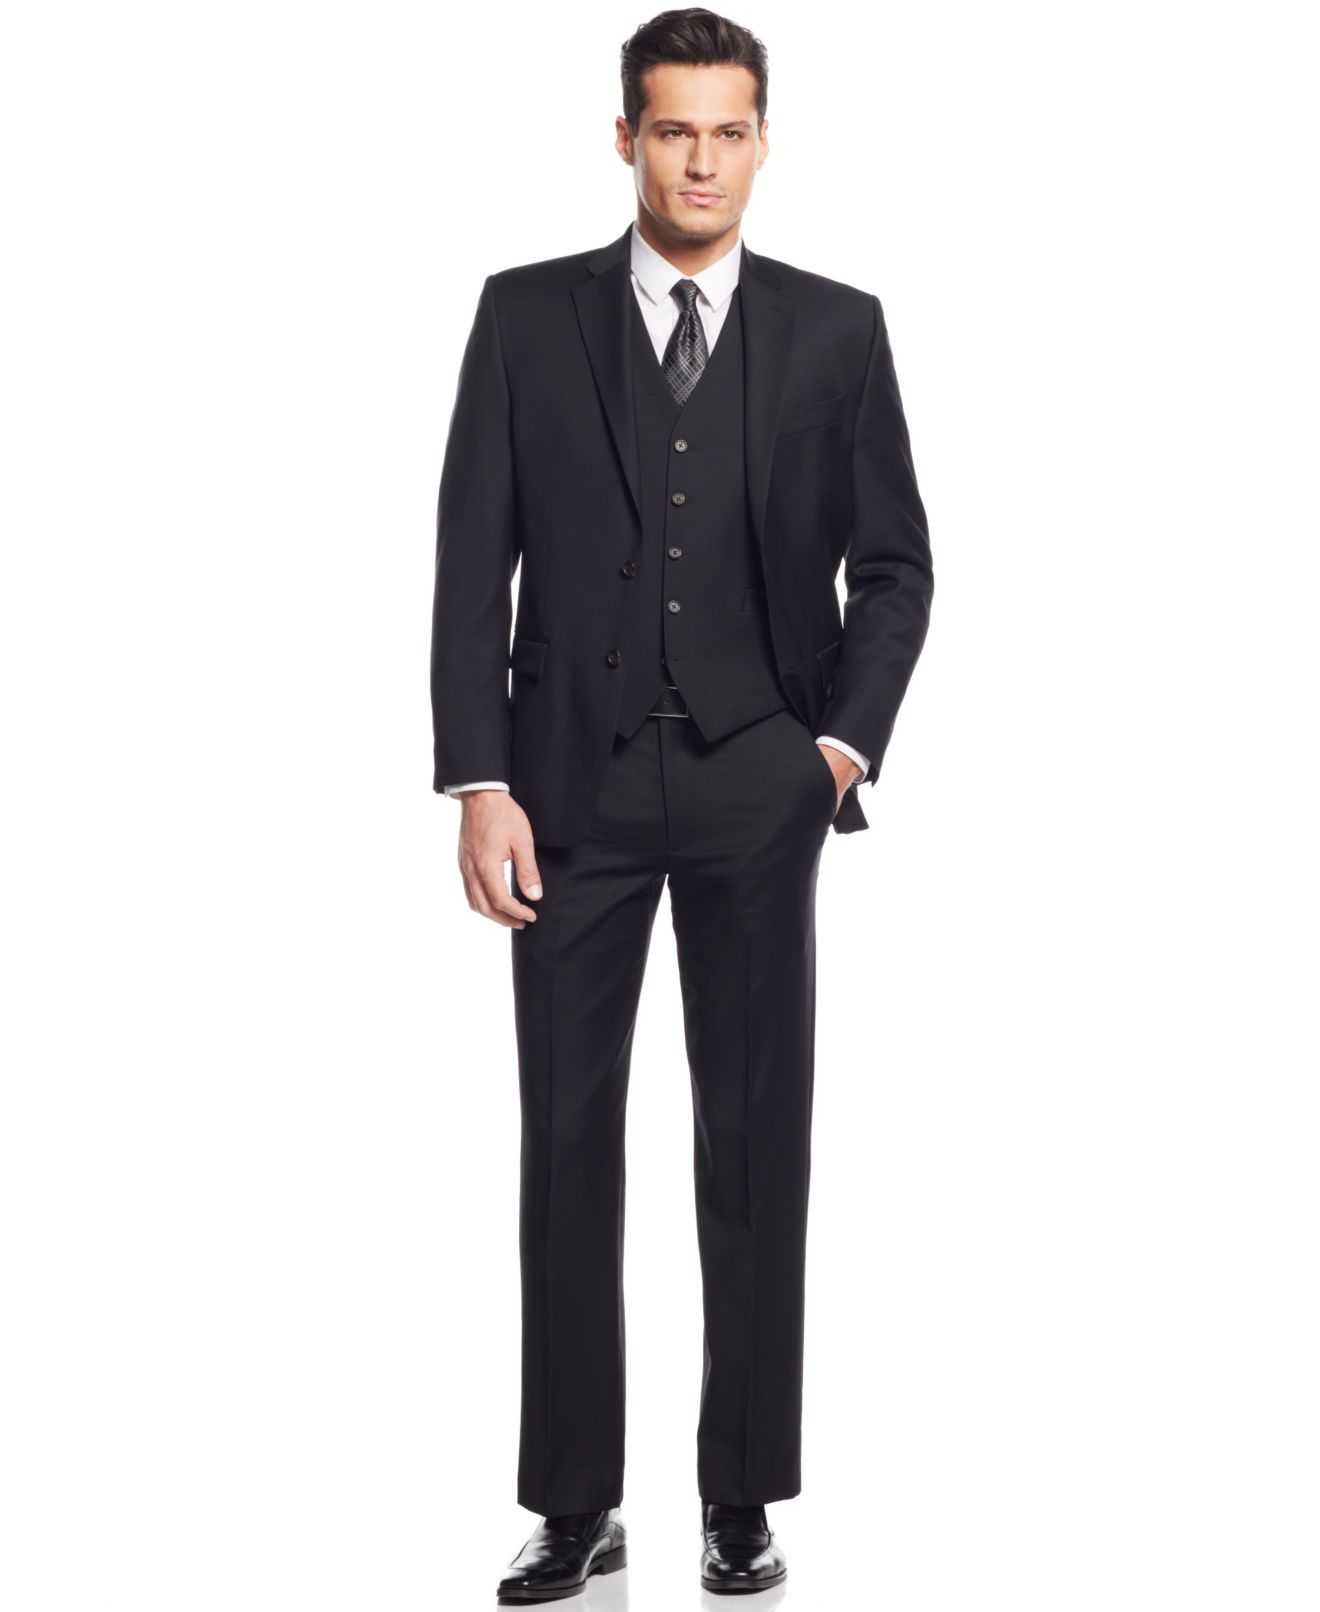 Lauren Ralph Lauren Black Solid Classic-Fit Suit Separates - Suits ...